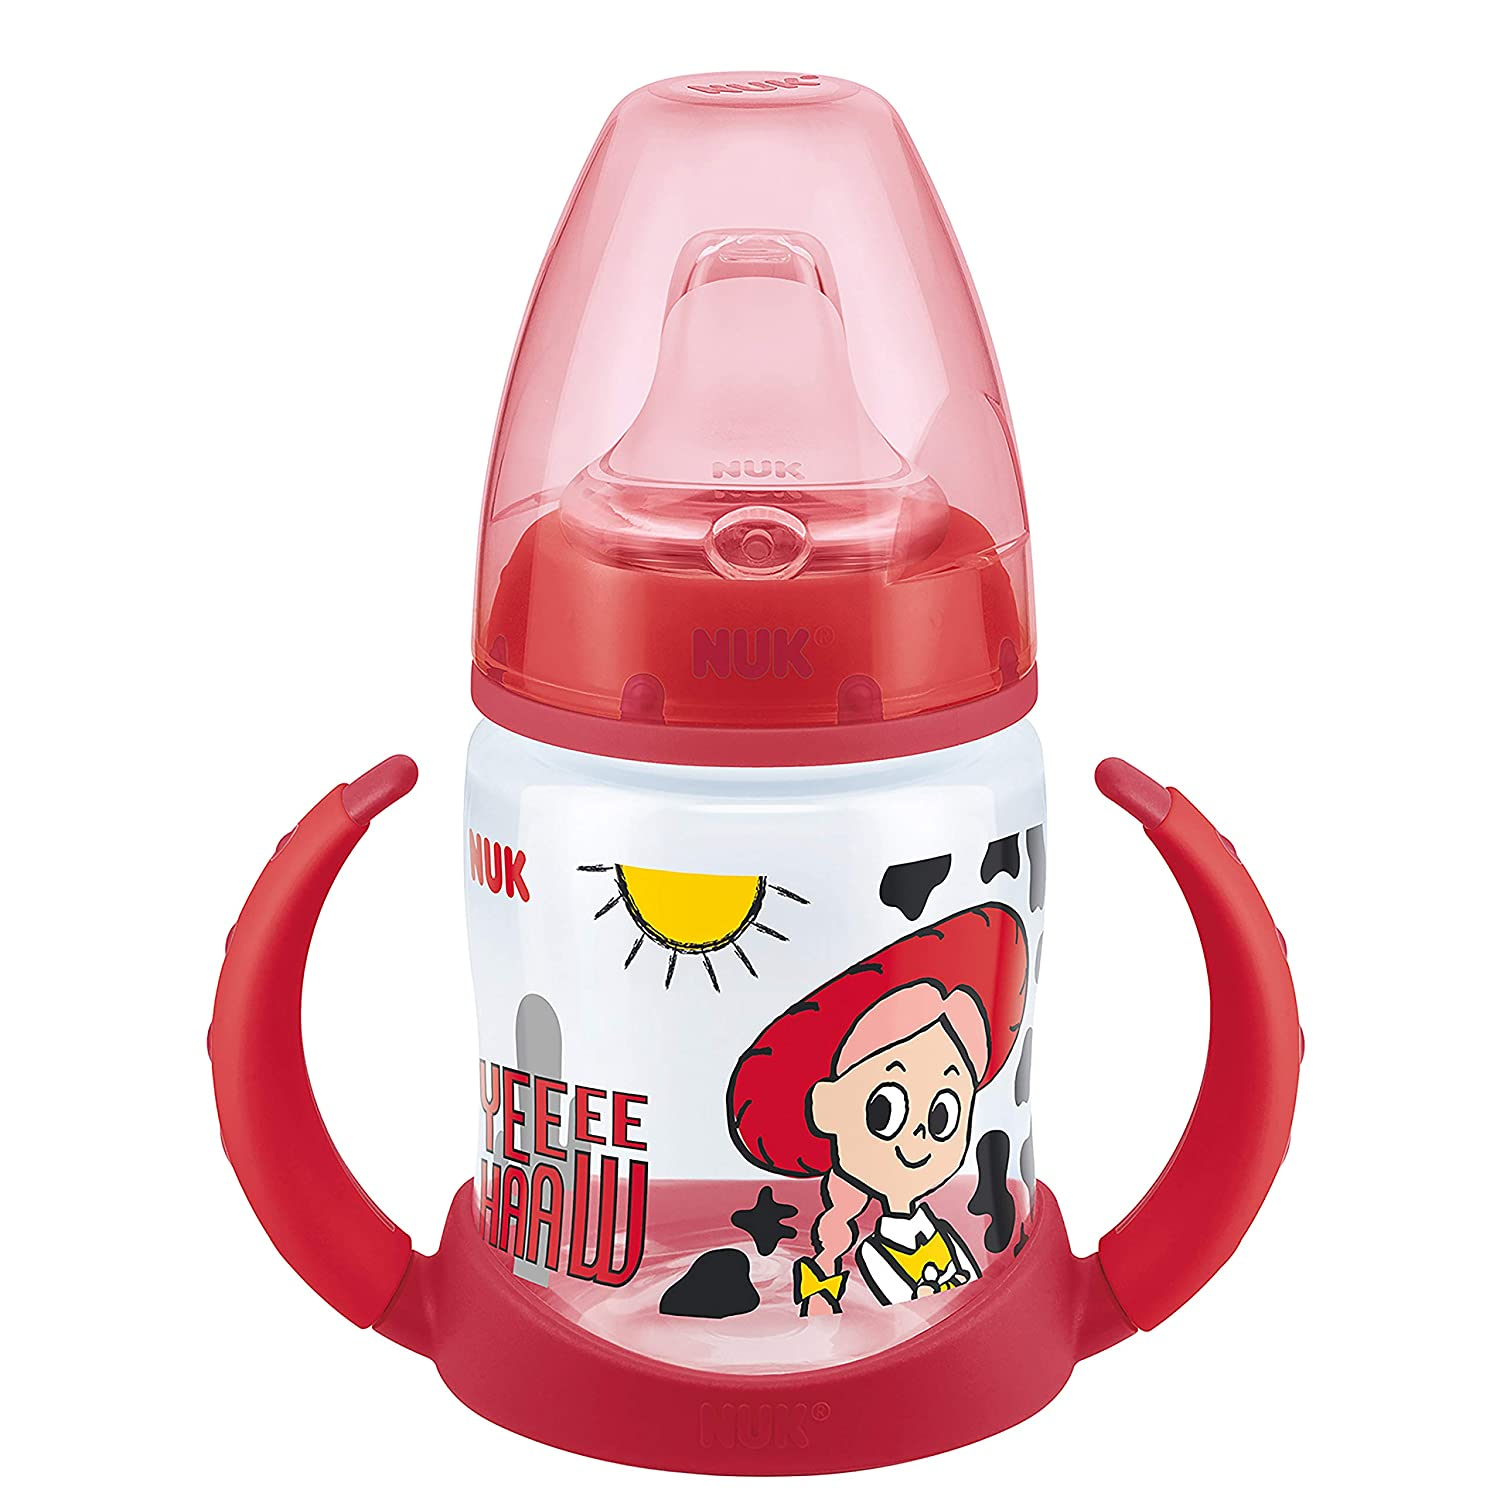 grau NUK 10215269 Disney Mickey Mouse First Choice Trinklernflasche BPA frei ab 6 Monate 150 ml